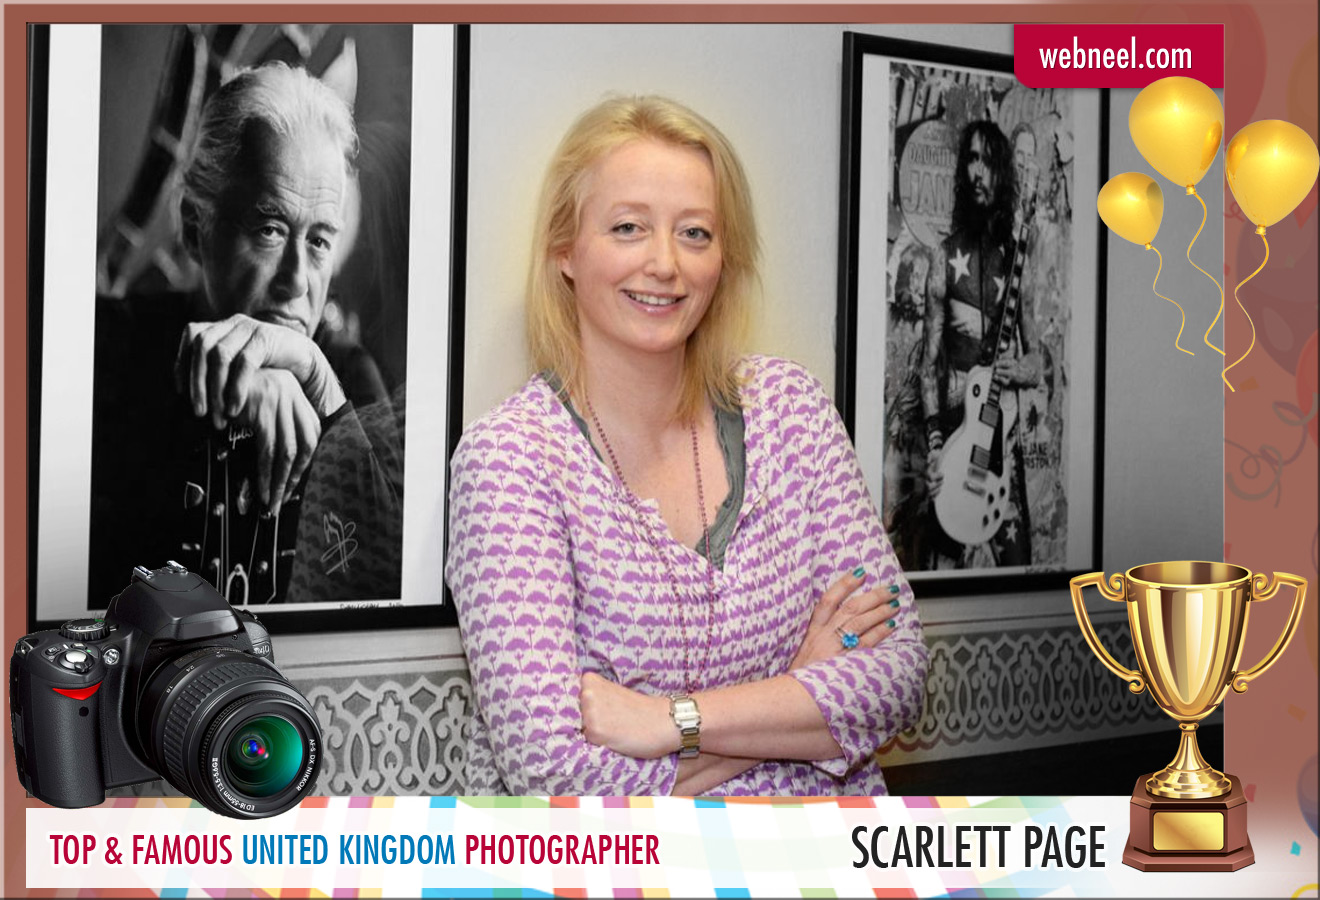 famous uk photographer scarlett page